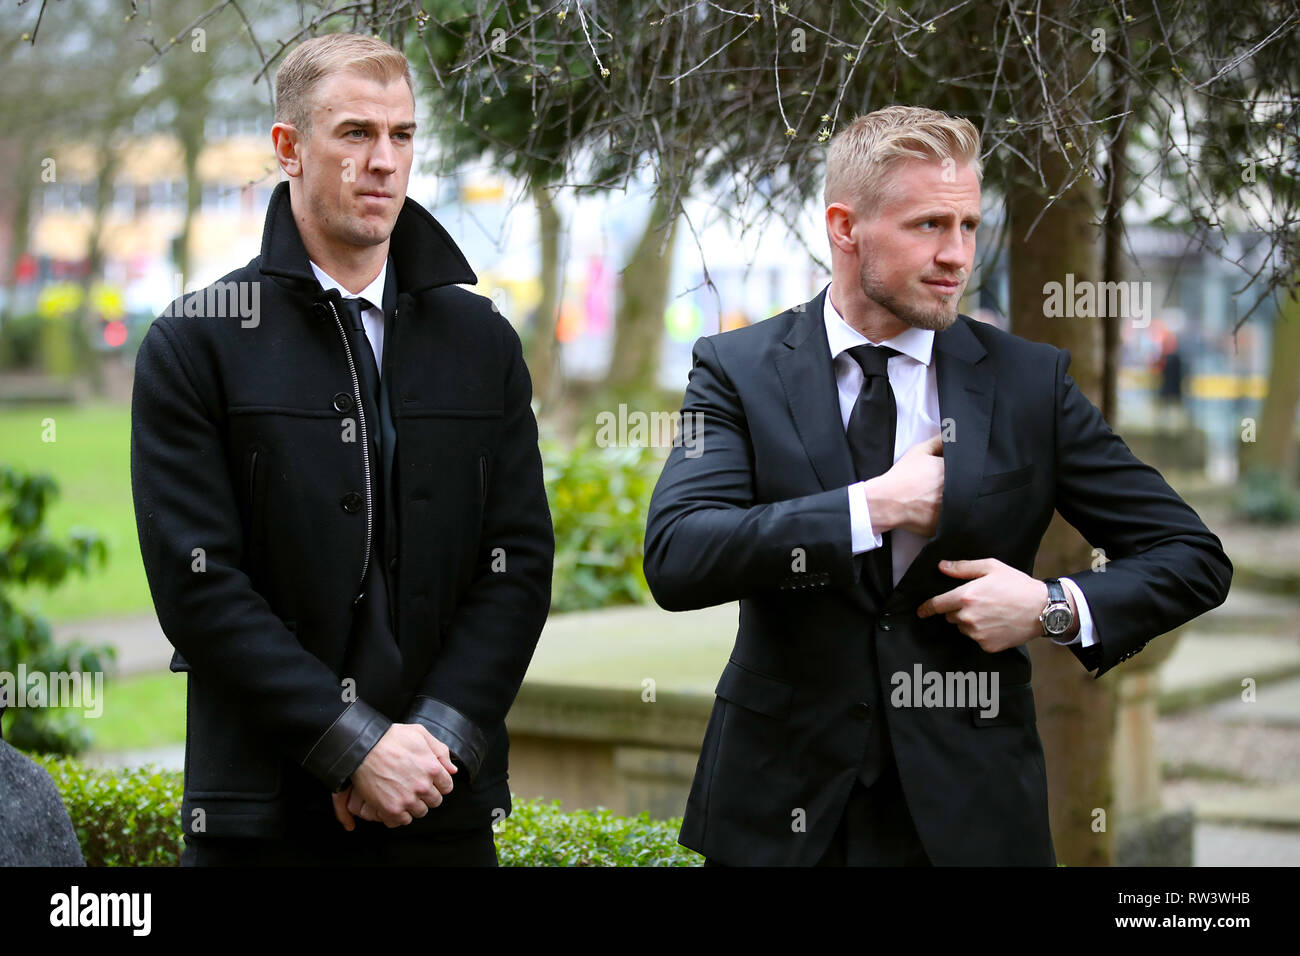 Burnley Goalkeeper Joe Hart (left) and Leicester City goalkeeper Kasper Schmeichel arrive for the funeral service for Gordon Banks at Stoke Minster. - Stock Image